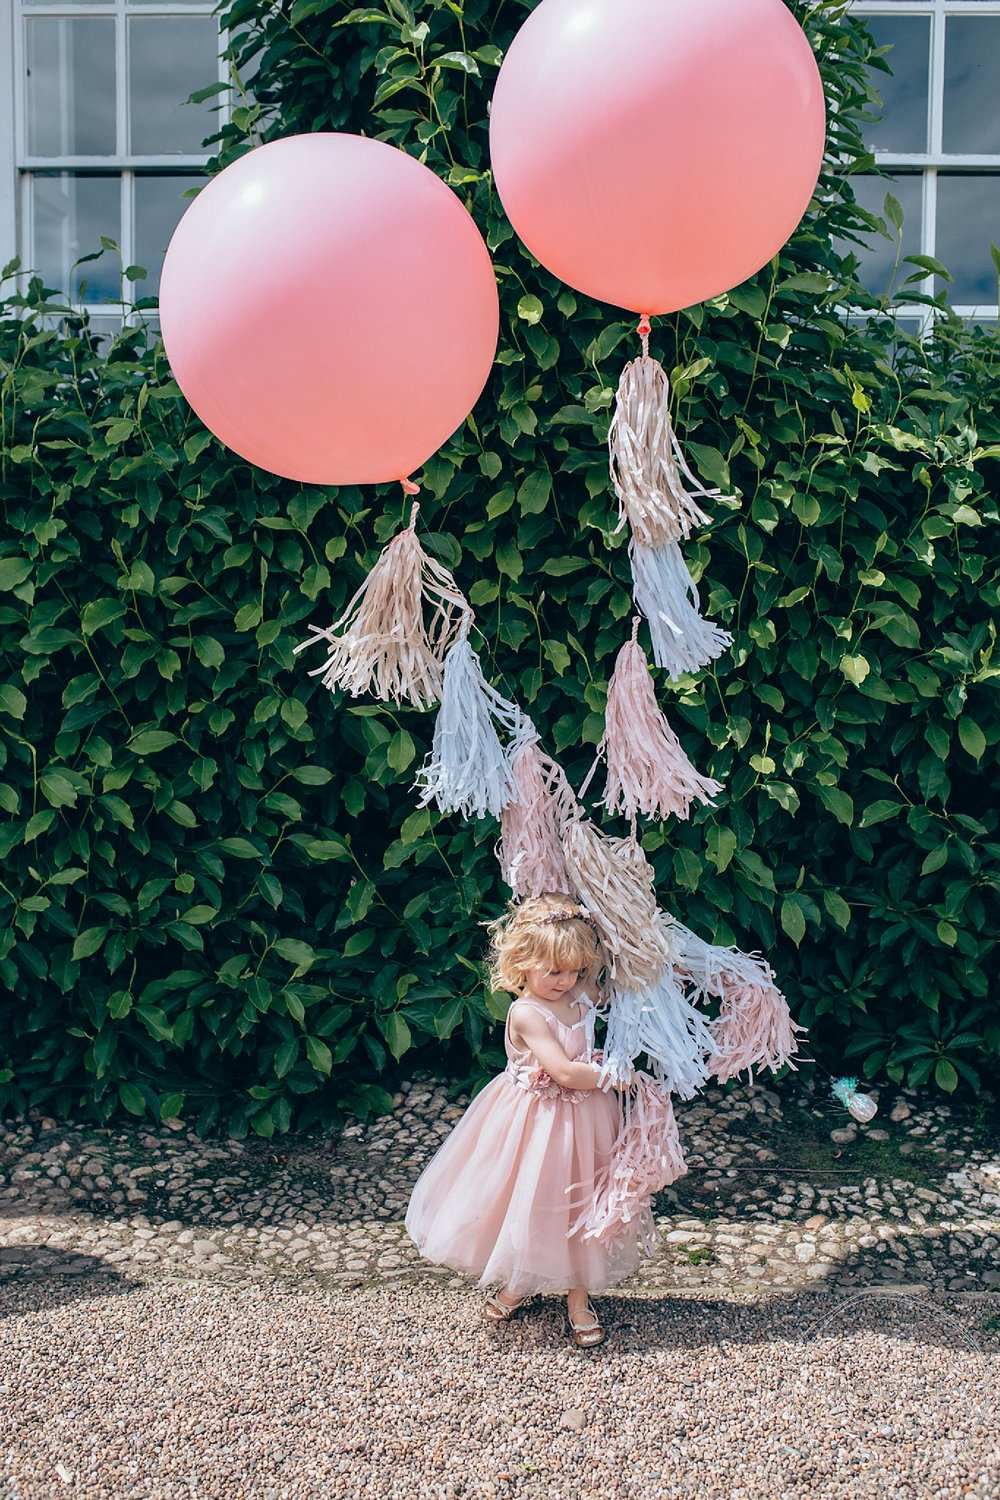 Giant pink wedding balloons